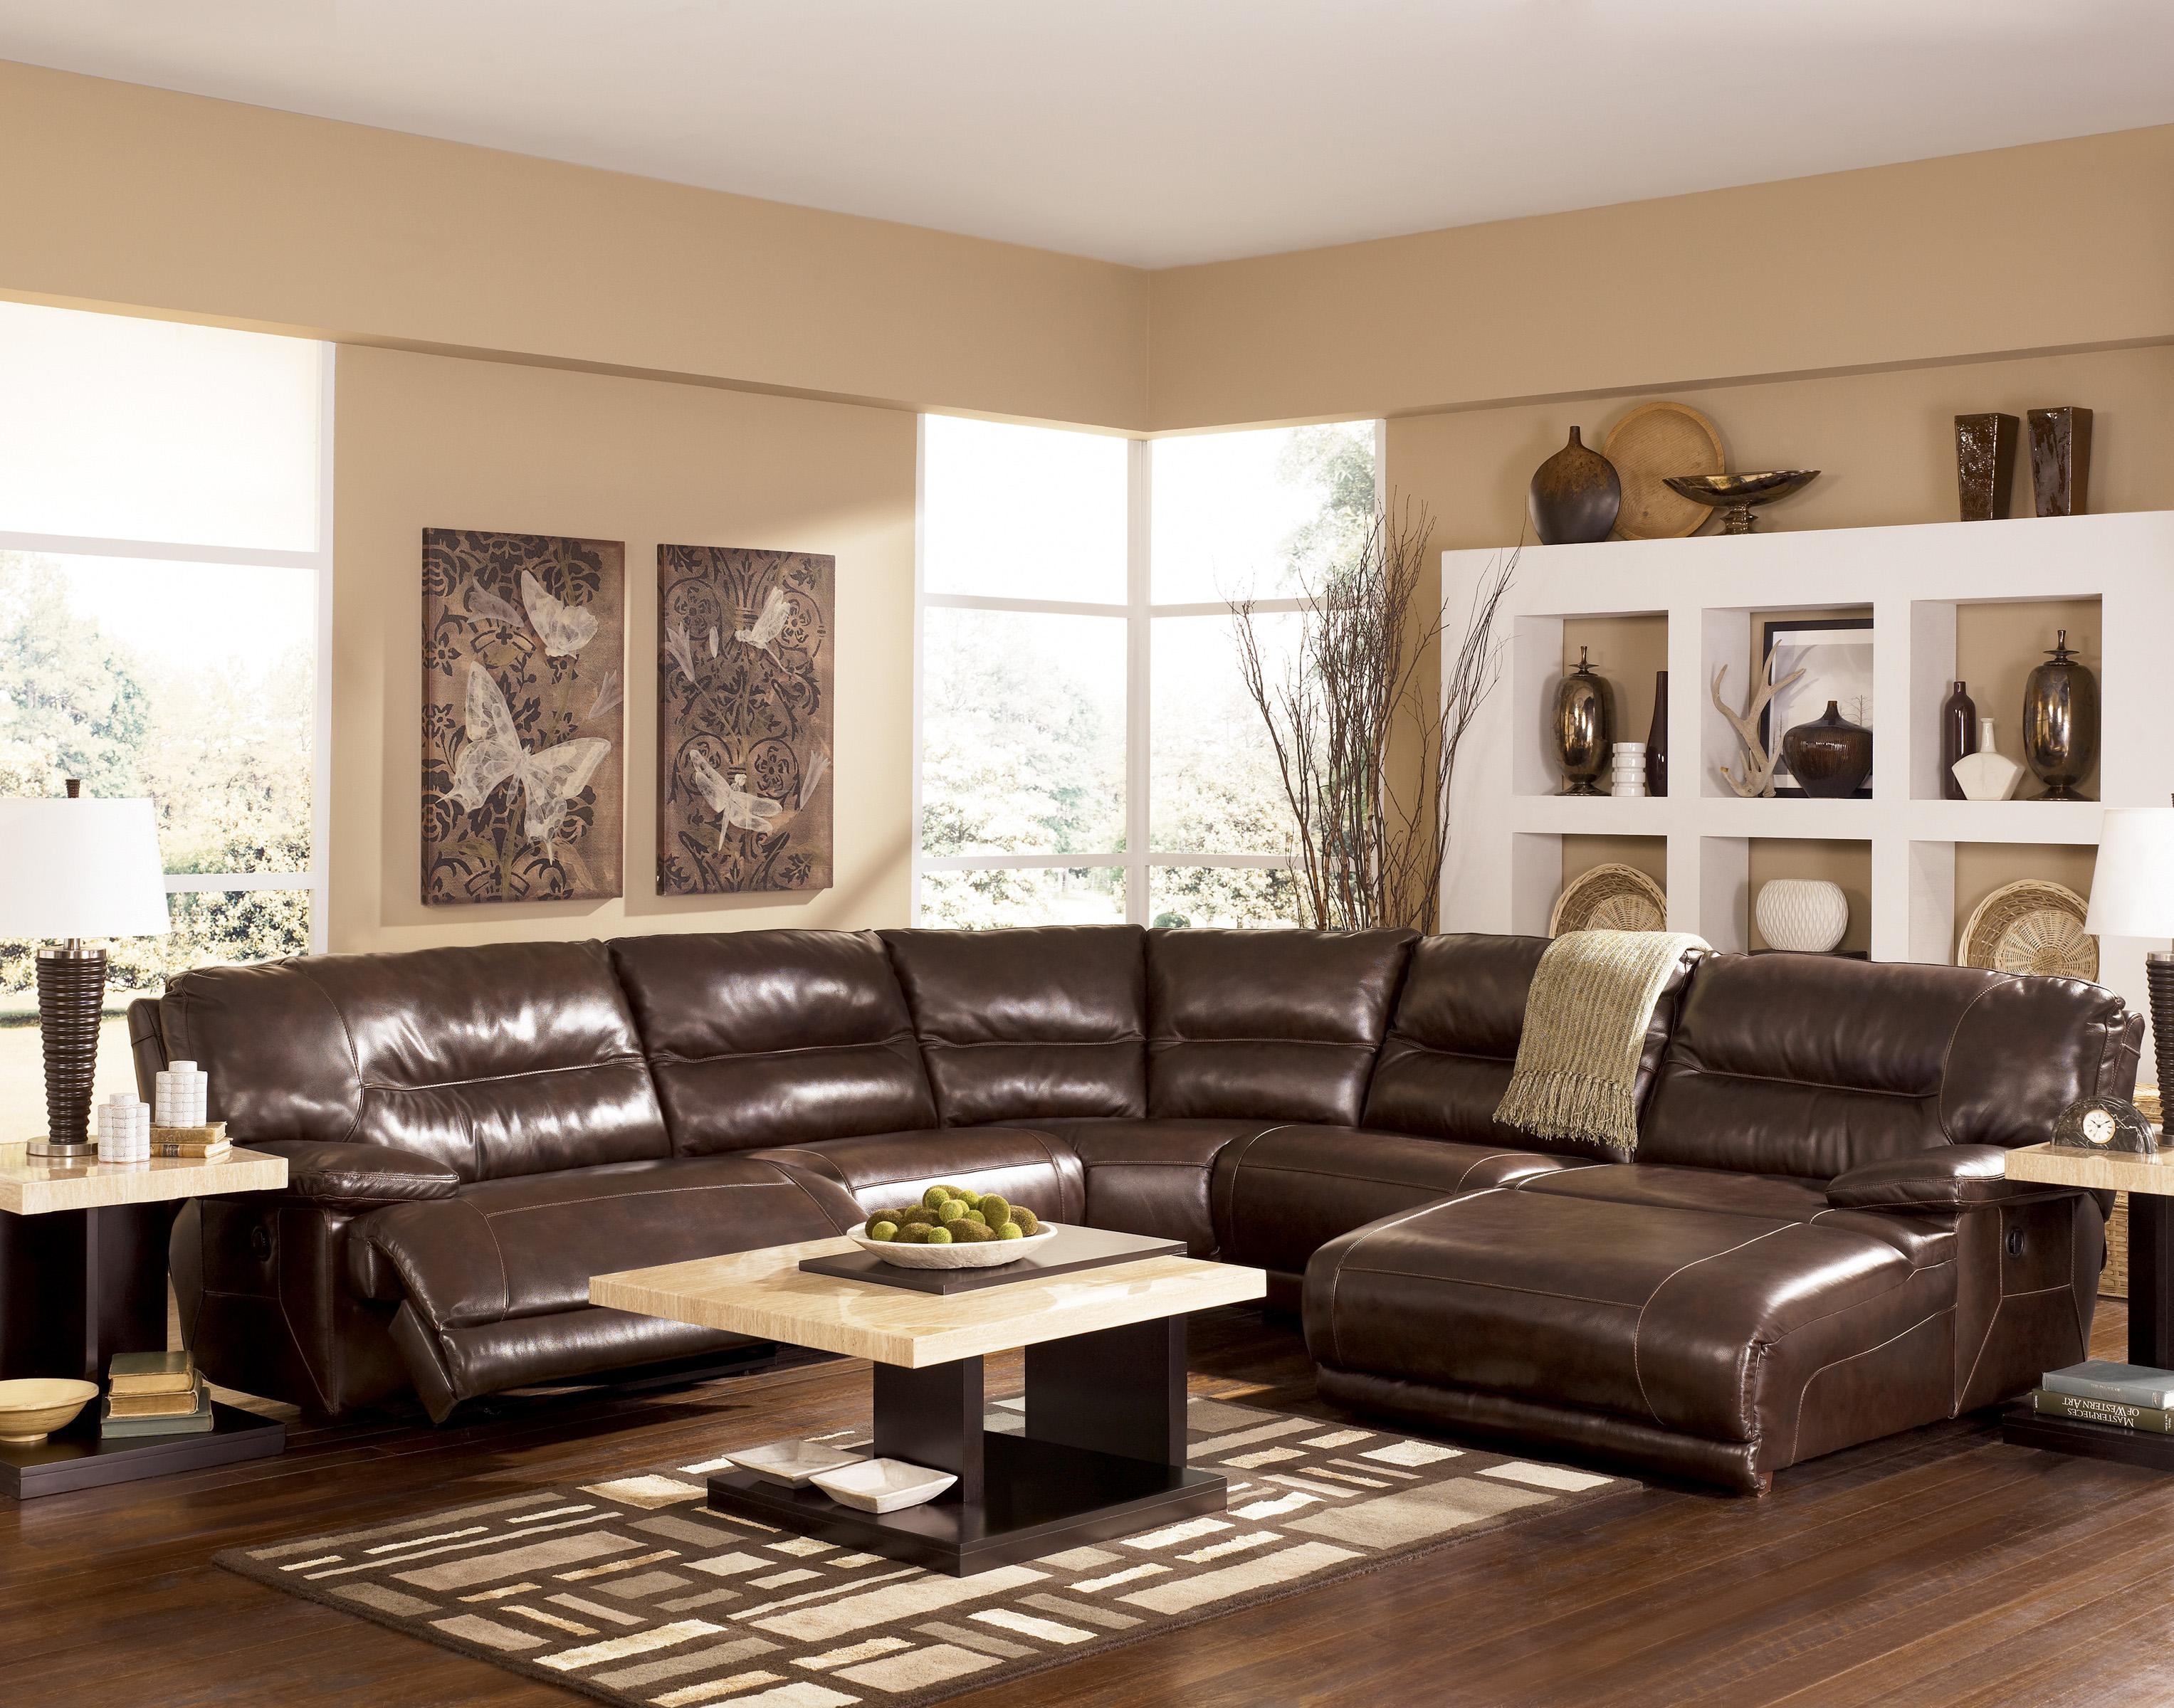 Ashley Furniture Leather Chair 20 Top Ashley Furniture Leather Sectional Sofas Sofa Ideas